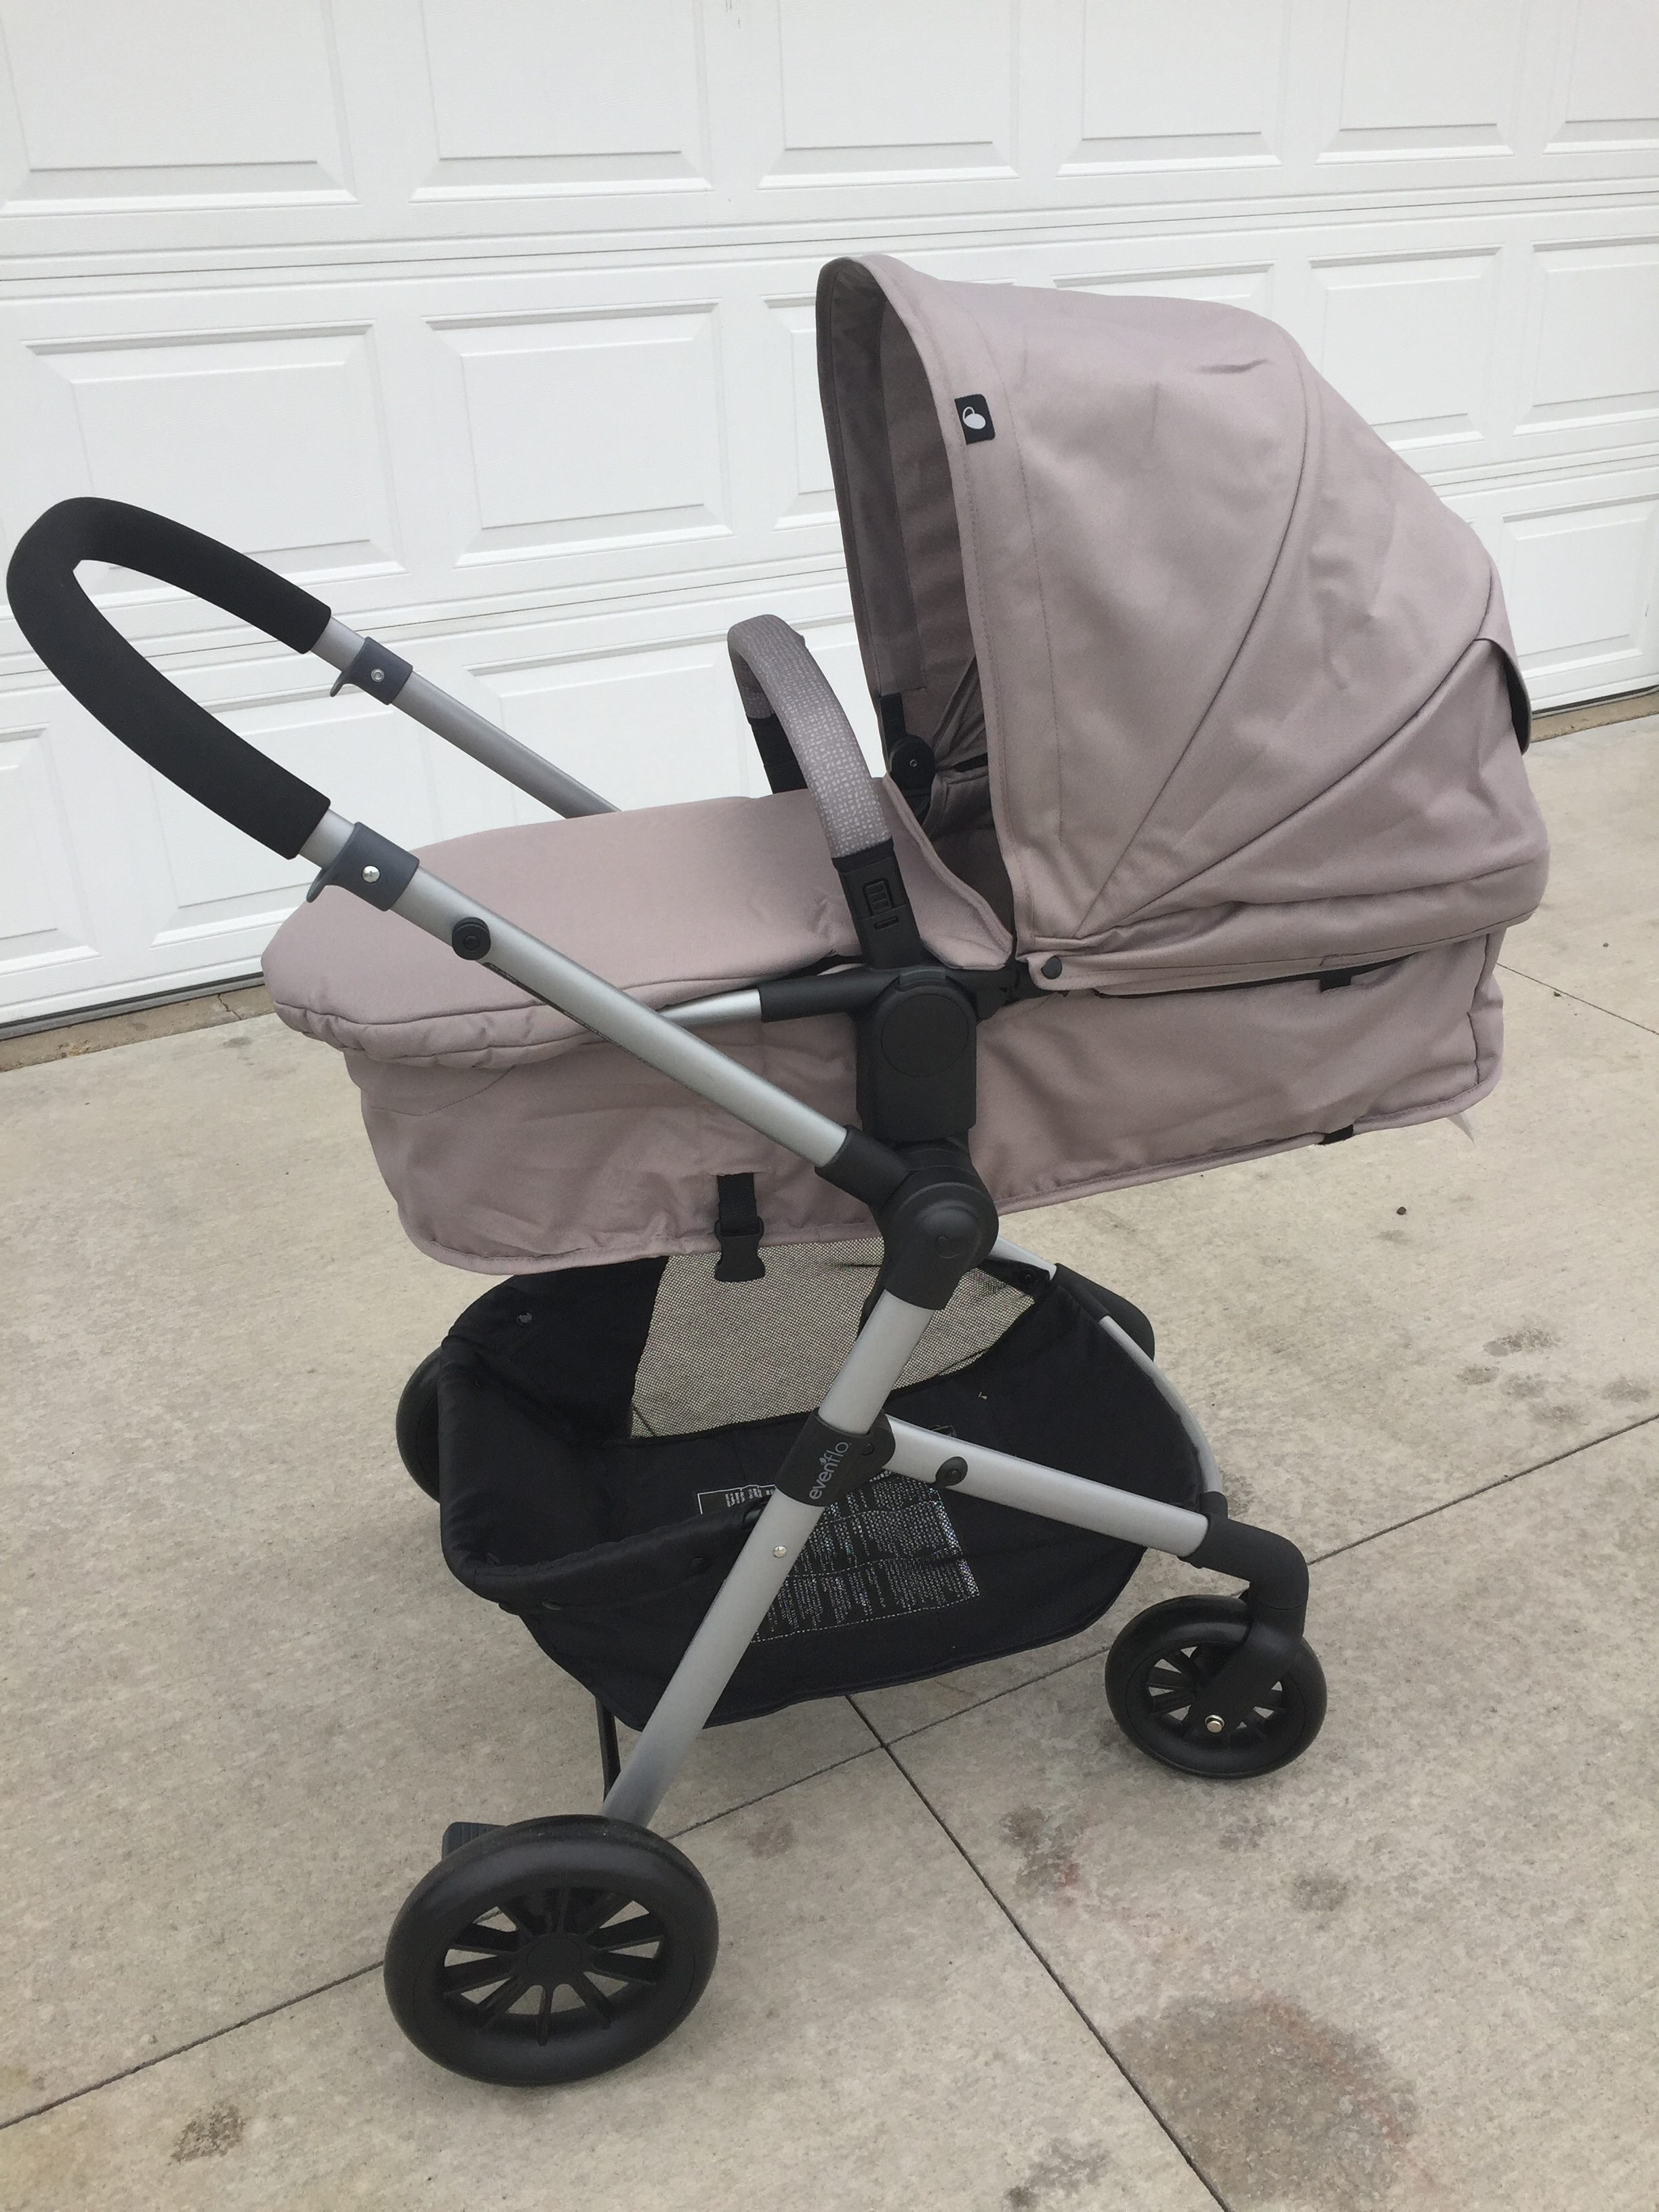 I Always Tell New Moms That Their Most Important Purchases Is Car Seat And Stroller You Want A Safe Trustworthy Number One